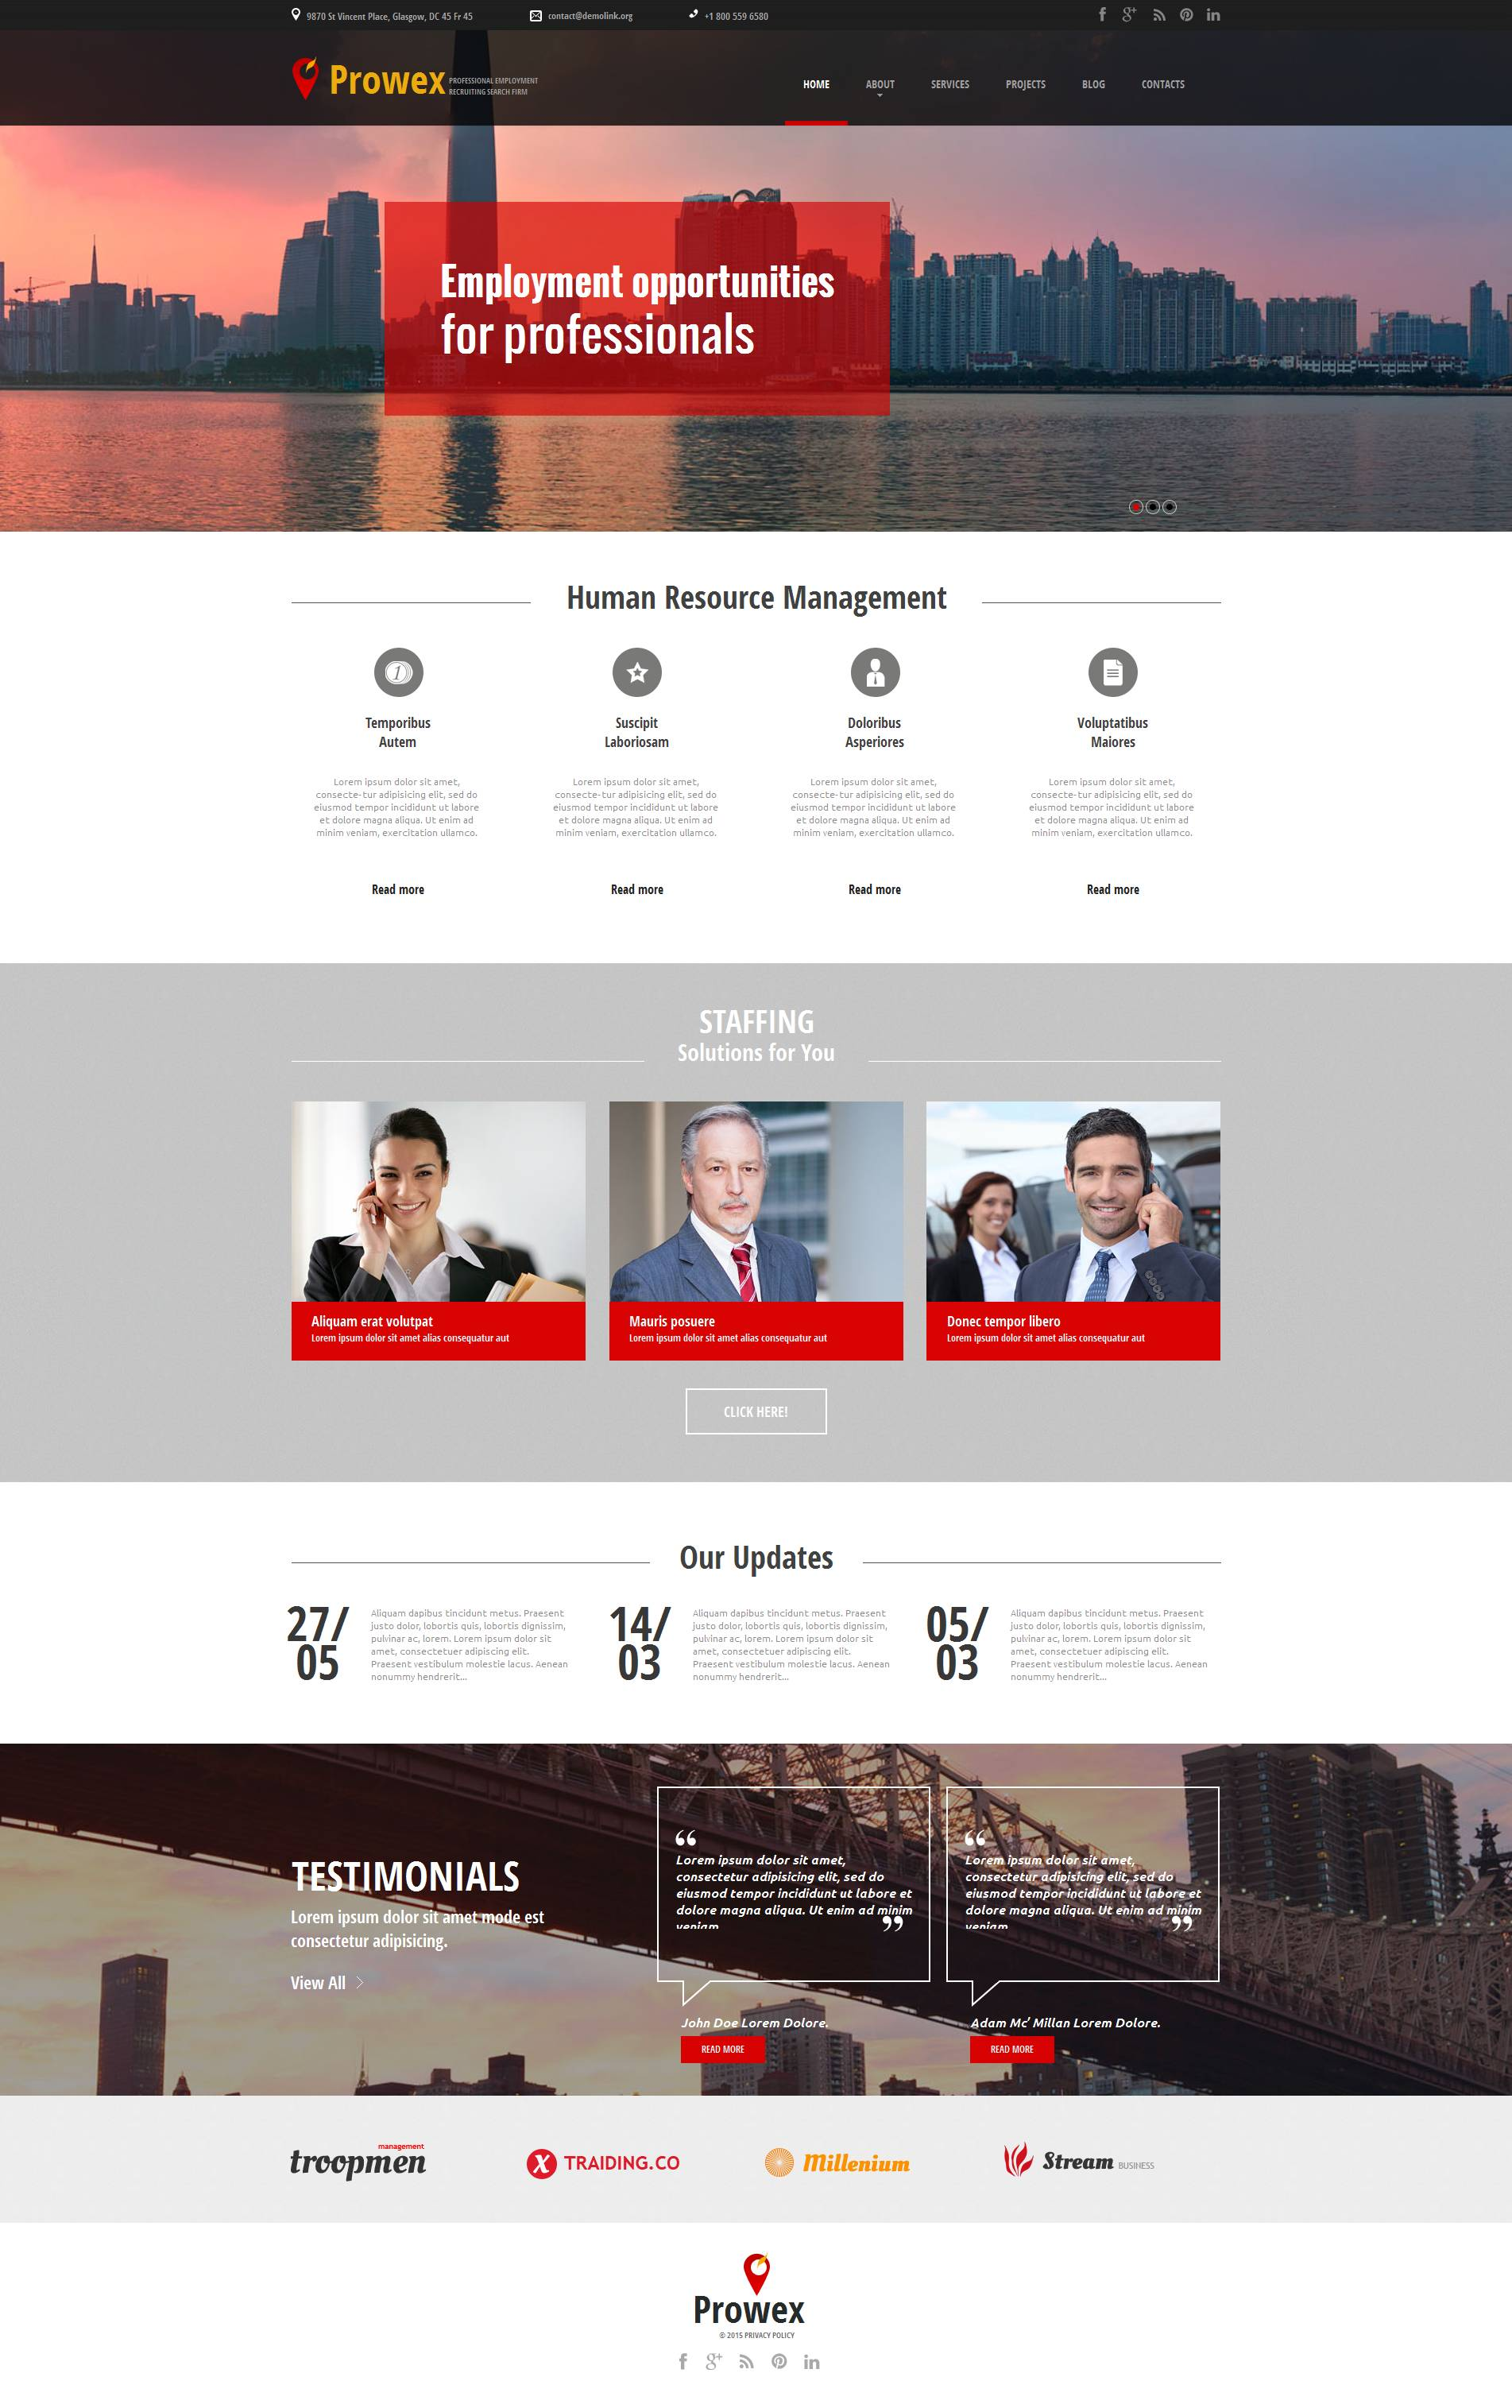 The Prowex Search Moto CMS HTML Design 53064, one of the best Moto CMS HTML templates of its kind (business, most popular), also known as prowex search Moto CMS HTML template, finder Moto CMS HTML template, bank portal career company Moto CMS HTML template, opportunities Moto CMS HTML template, find Moto CMS HTML template, resume Moto CMS HTML template, candidate Moto CMS HTML template, freelance Moto CMS HTML template, profile Moto CMS HTML template, testimonials Moto CMS HTML template, work Moto CMS HTML template, team Moto CMS HTML template, standard Moto CMS HTML template, principles Moto CMS HTML template, private public management Moto CMS HTML template, support Moto CMS HTML template, services Moto CMS HTML template, vacancy Moto CMS HTML template, employment Moto CMS HTML template, labor Moto CMS HTML template, registry Moto CMS HTML template, office Moto CMS HTML template, searching and related with prowex search, finder, bank portal career company, opportunities, find, resume, candidate, freelance, profile, testimonials, work, team, standard, principles, private public management, support, services, vacancy, employment, labor, registry, office, searching, etc.